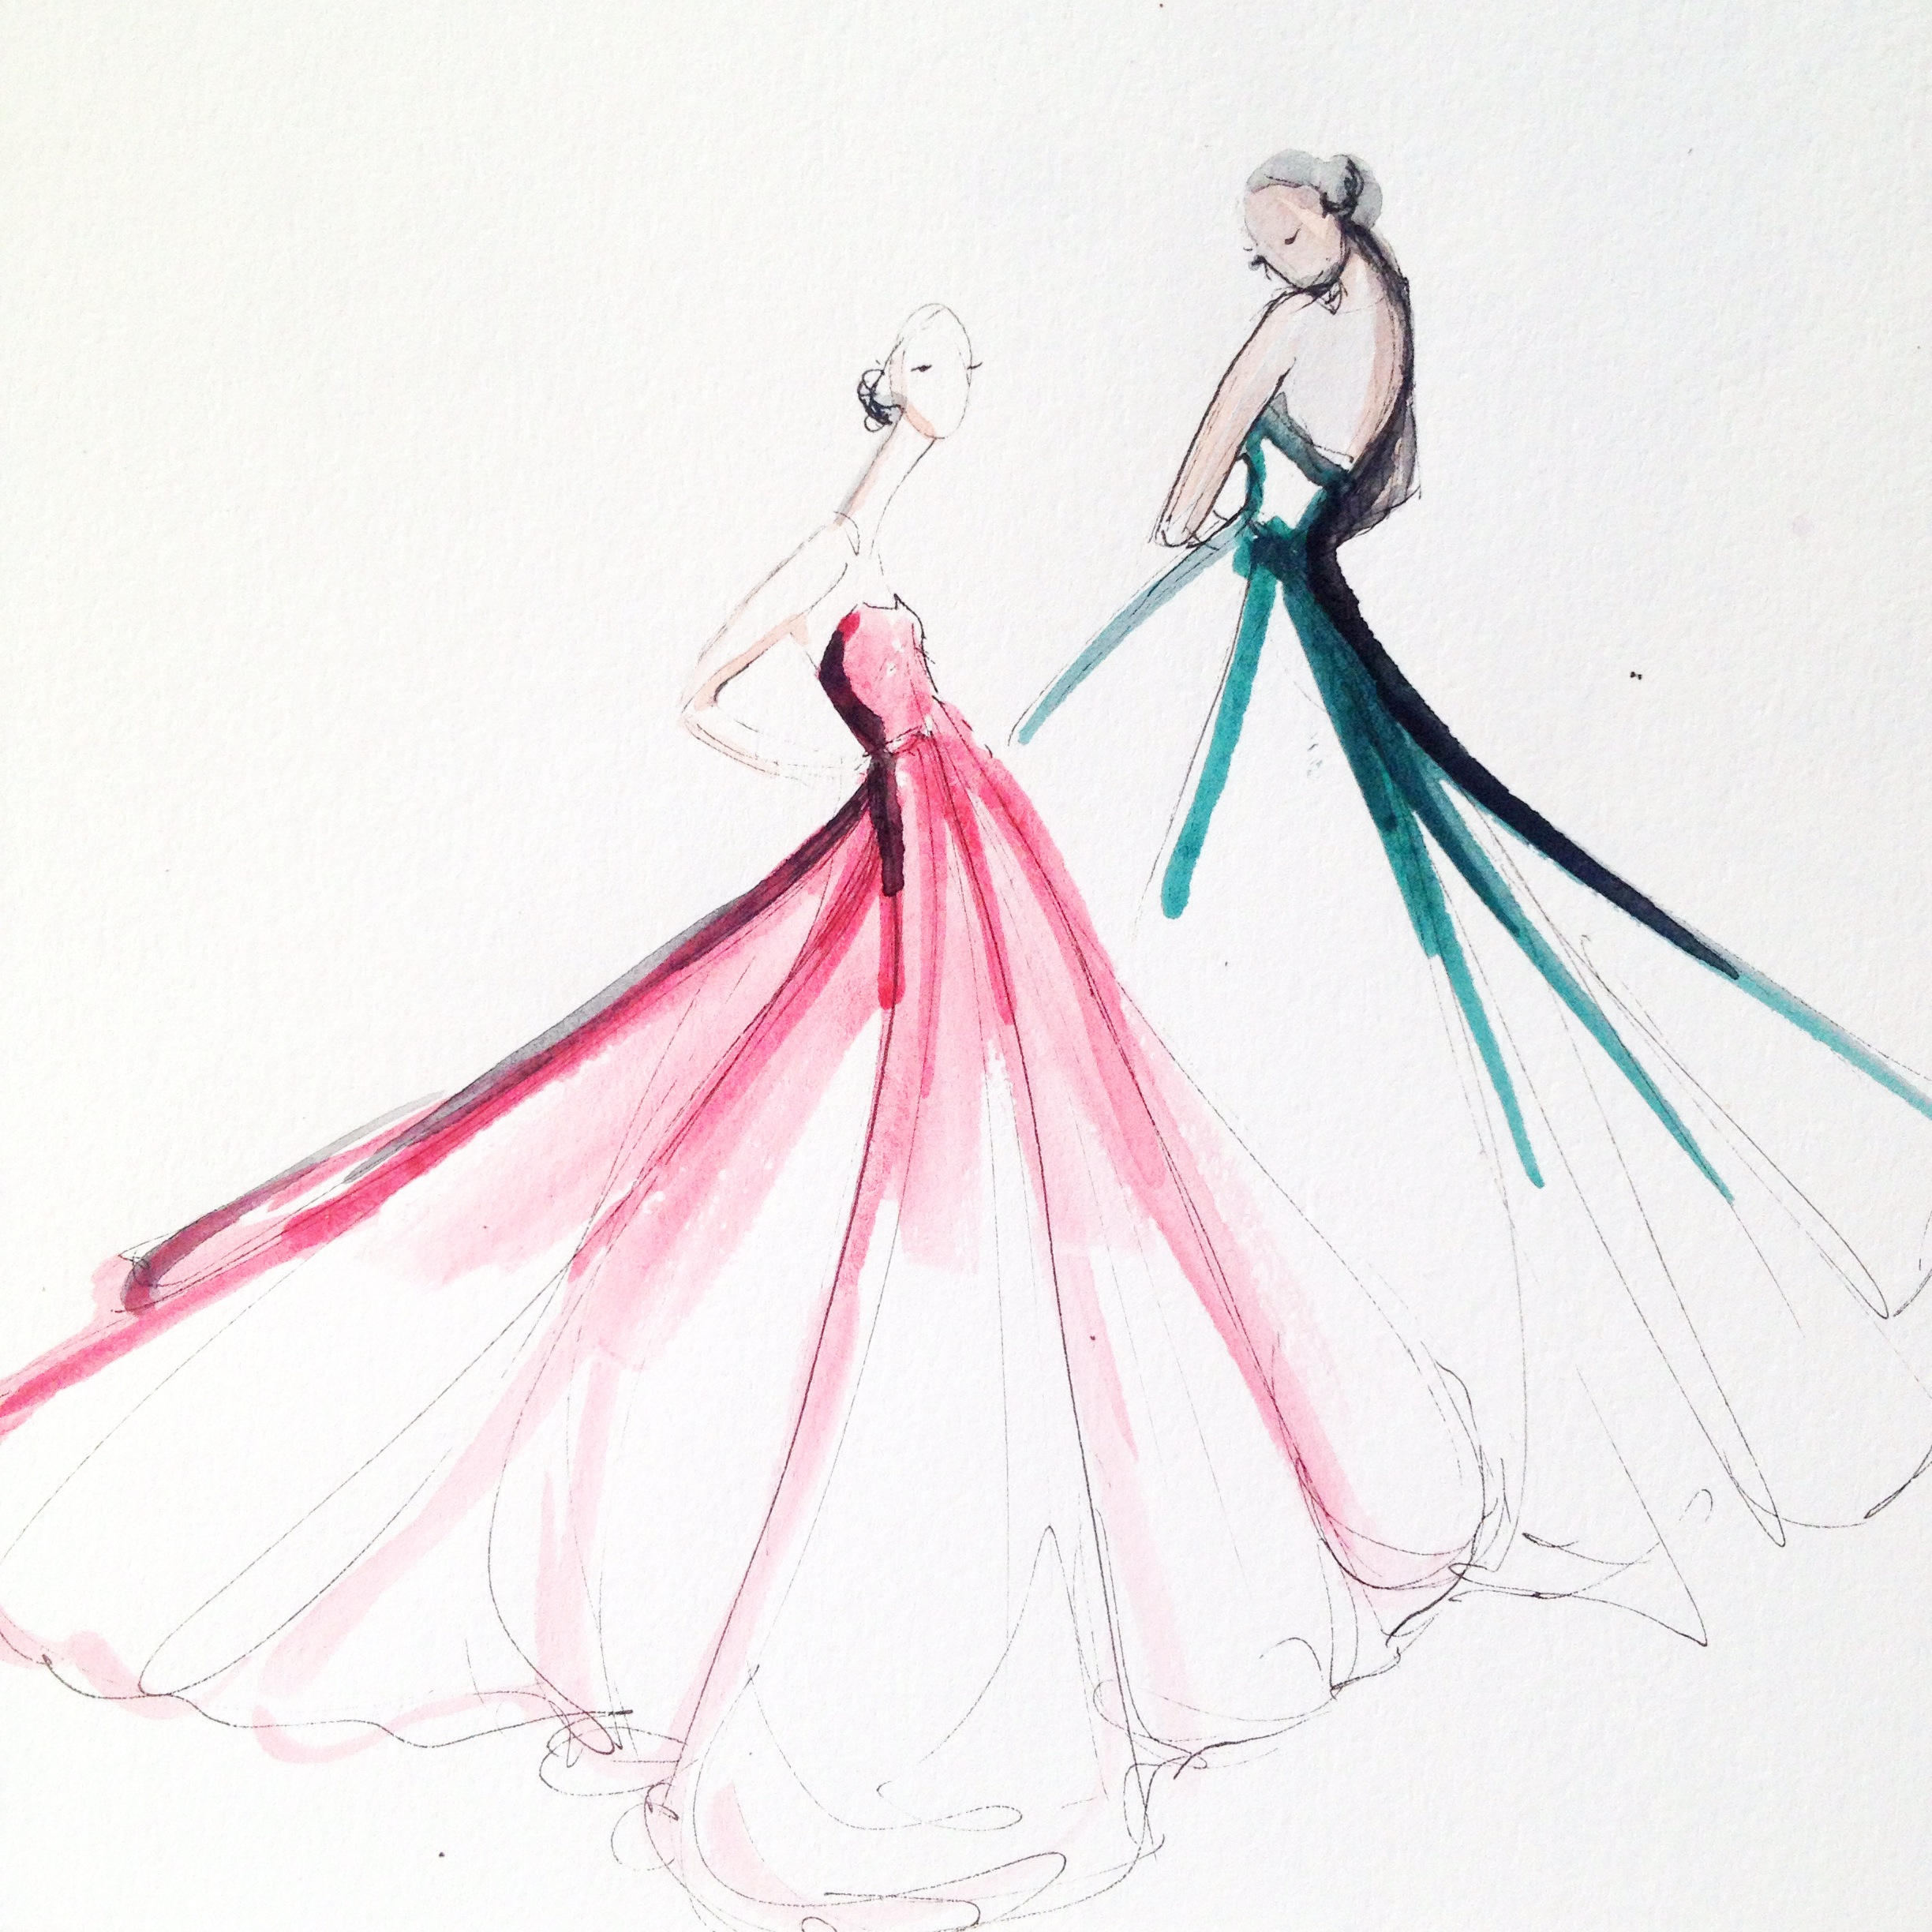 Future Plans >> Fashion Illustration by Jeanette Getrost | Meredith Corning Consulting